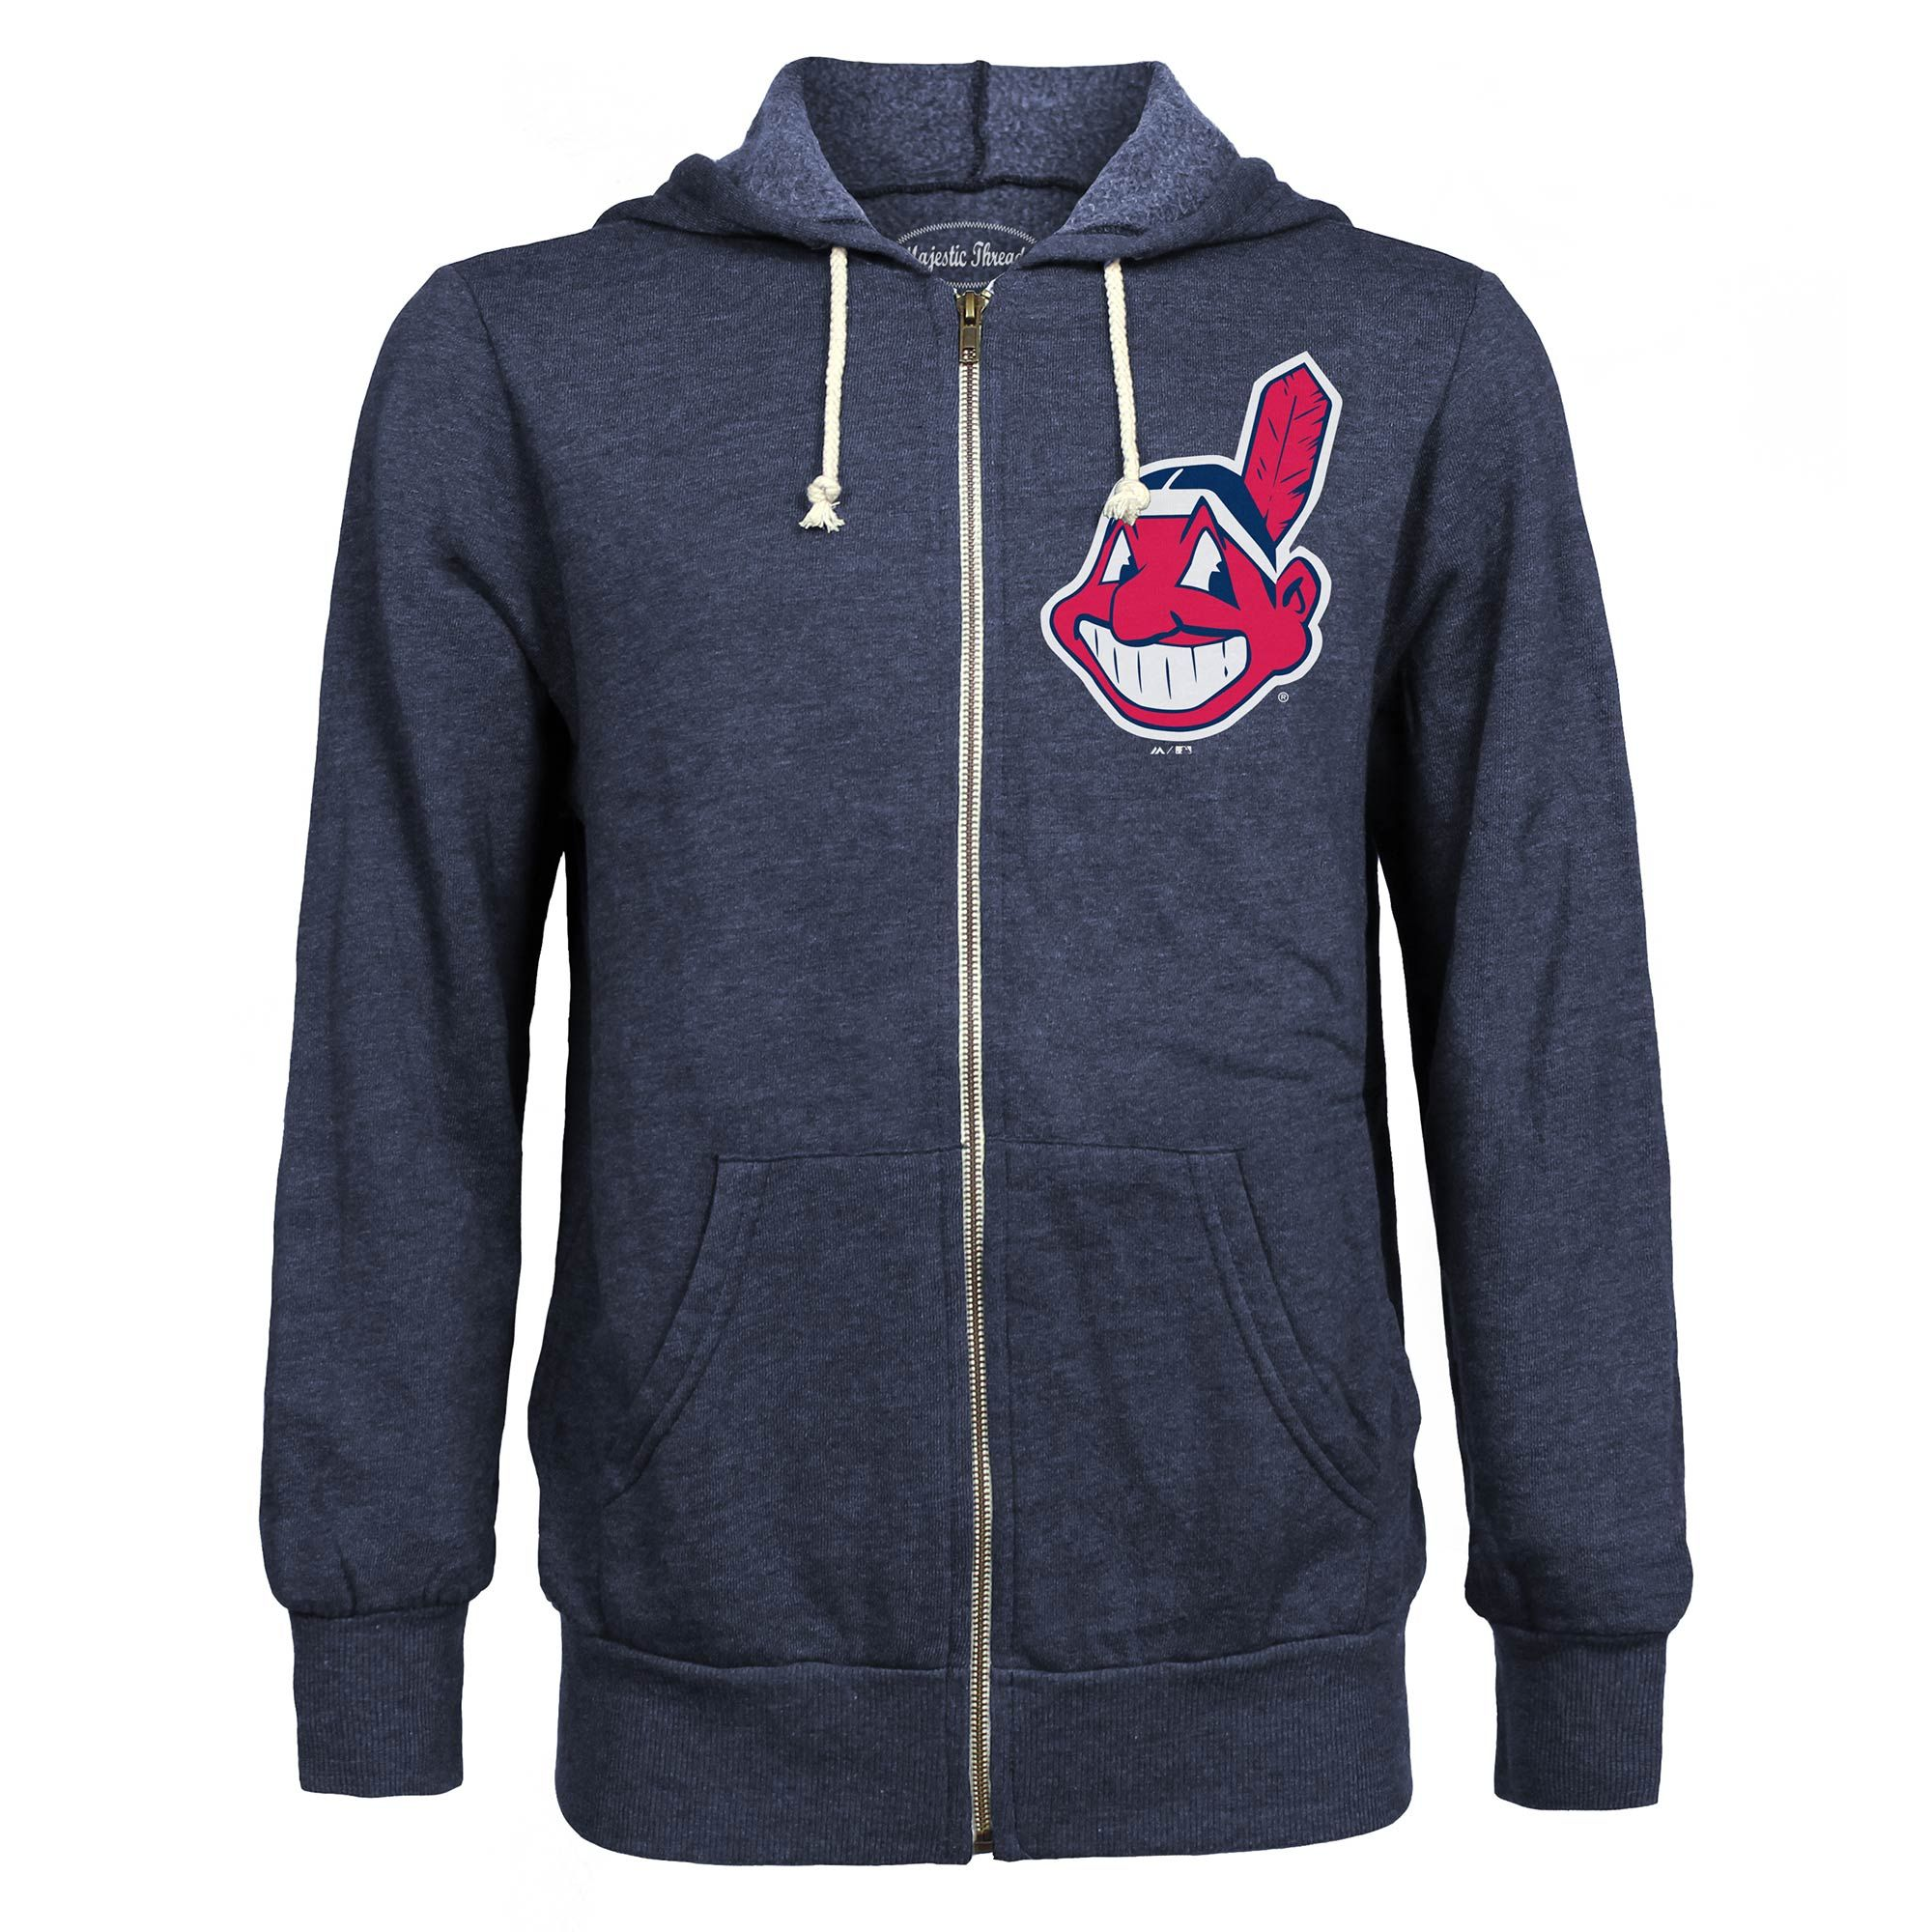 info for 5c166 94b24 Majestic Threads Cleveland Indians Navy Distressed Tri-Blend ...